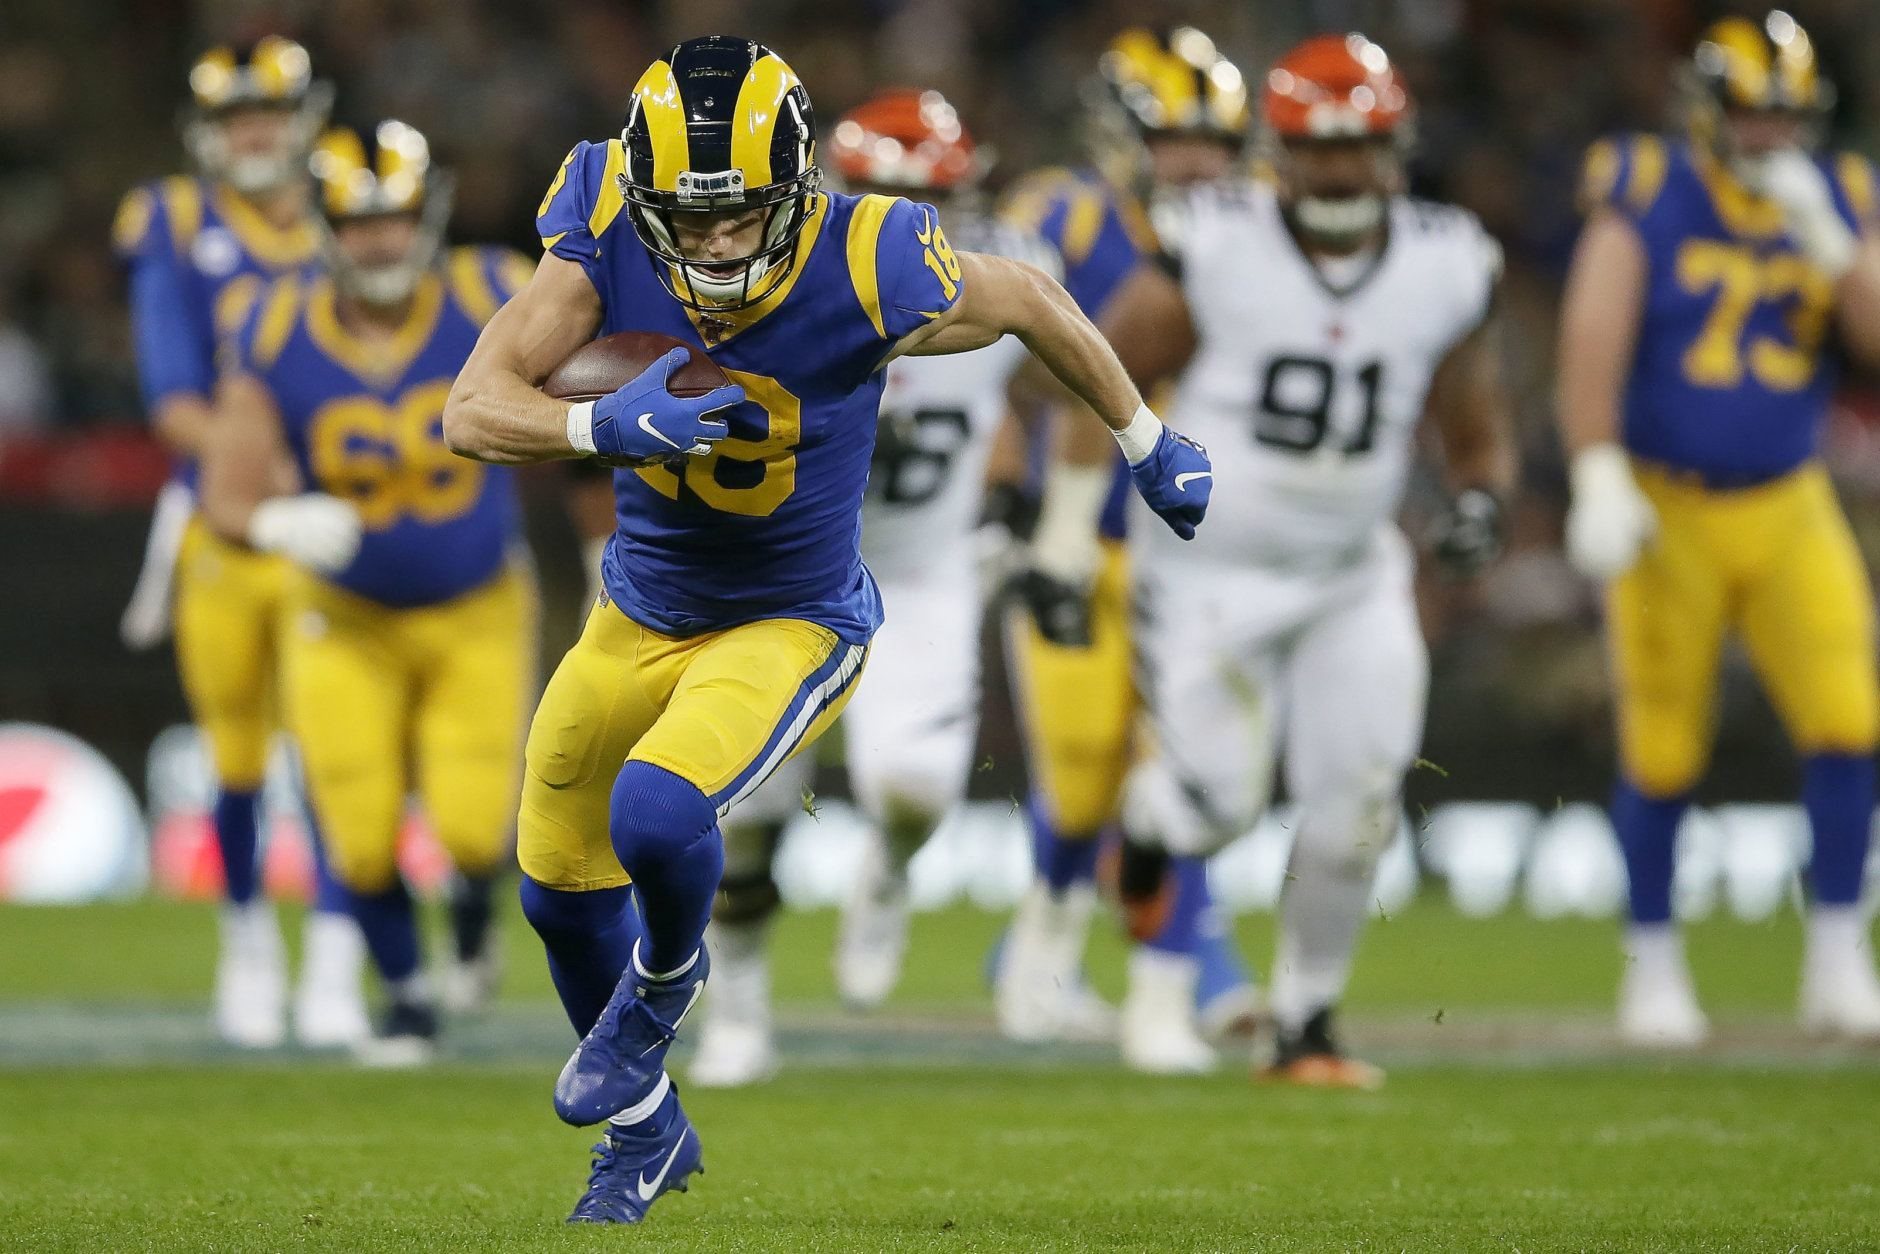 <p><b>Comeback Player of the Year: Cooper Kupp</b></p> <p>This dude tore his ACL in Week 10 and was right back in the lineup for the Rams&#8217; season opener, catching seven passes and looking like the reliable target he&#8217;d always been for L.A. Kupp has already played as many games as he did in 2018, and has 18 more catches and 226 more yards than he did a year ago. We haven&#8217;t seen a comeback from a late-season ACL tear quite like this since Adrian Peterson came nine yards shy of the single-season rushing record in his 2012 MVP season.</p> <p><i>Honorable mention: Dalvin Cook, Jimmy Garoppolo, Travis Frederick</i></p>